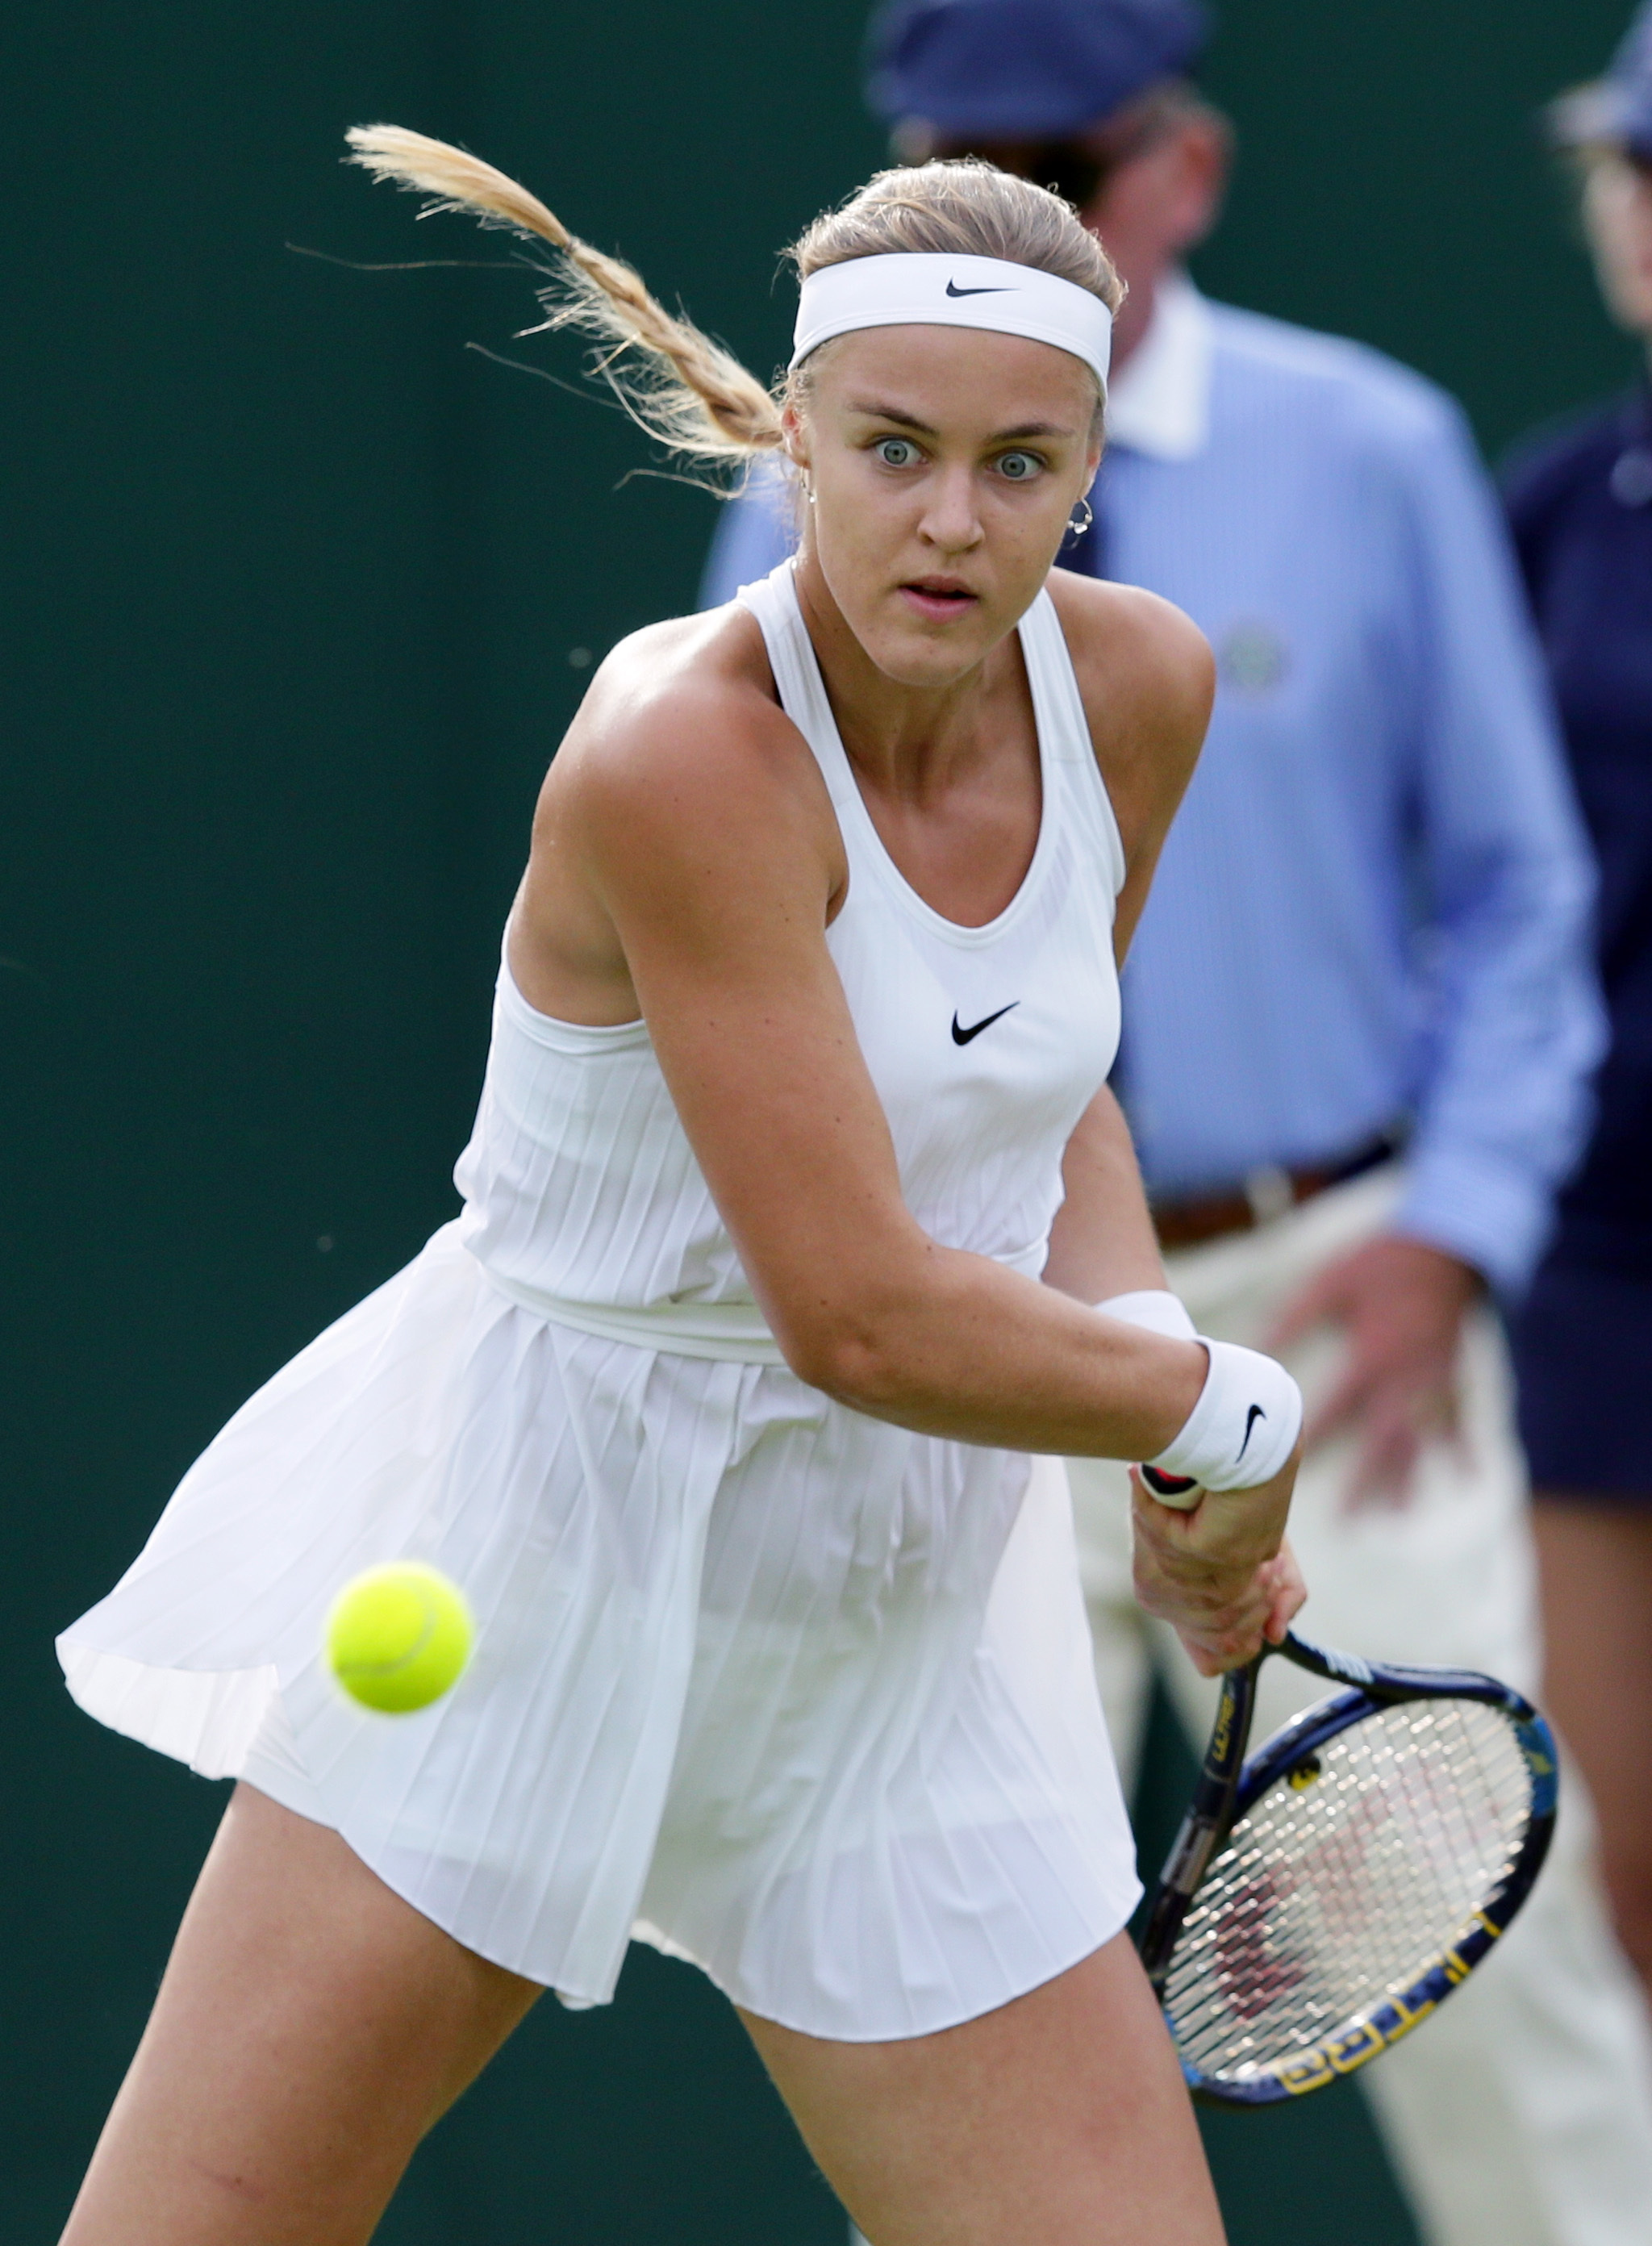 Anna Schmiedlova of Slovakia returns to Simona Halep of Romania during their women's singles match on day one of the Wimbledon Tennis Championships in London, Monday, June 27, 2016. (AP Photo/Tim Ireland)